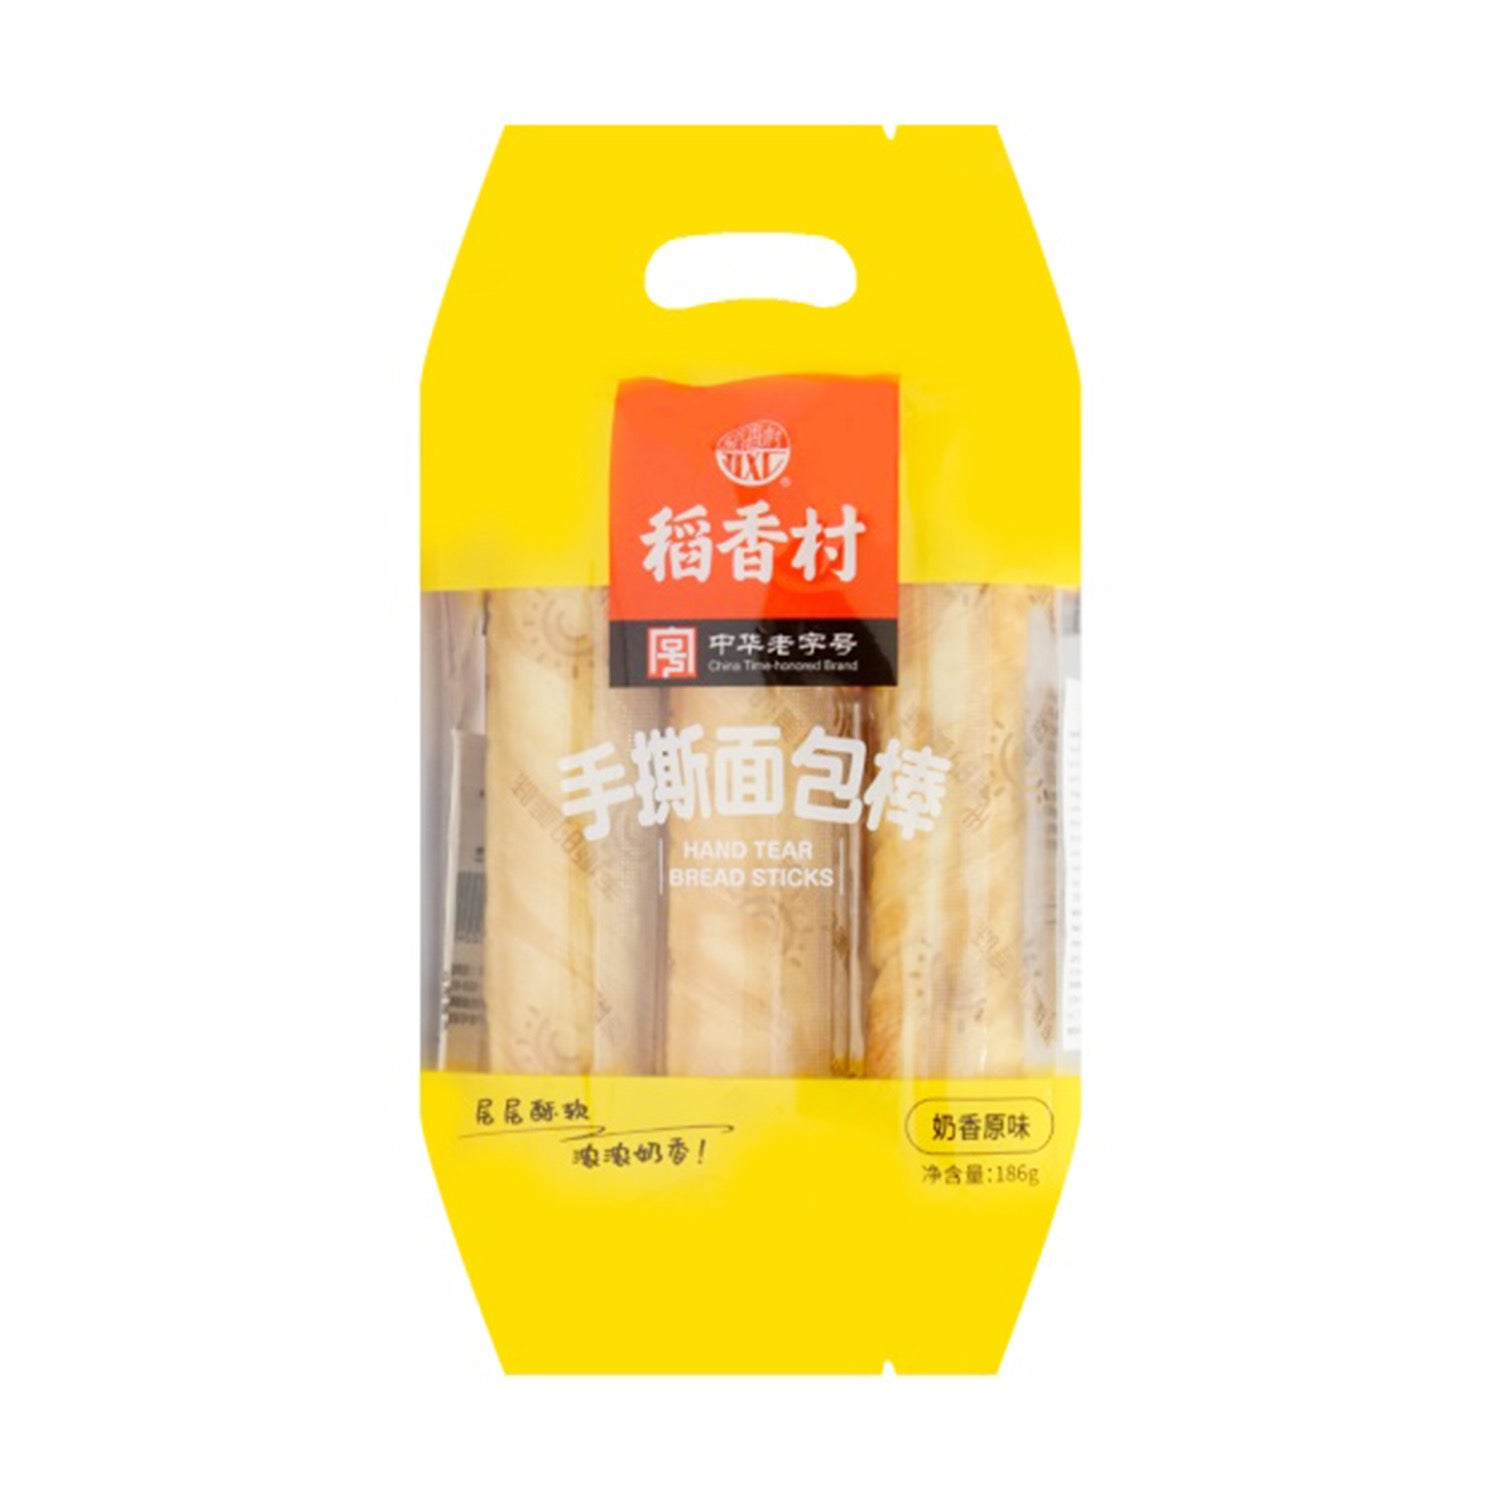 DXC Shredded Bread Stick Original Flavor 6.56oz